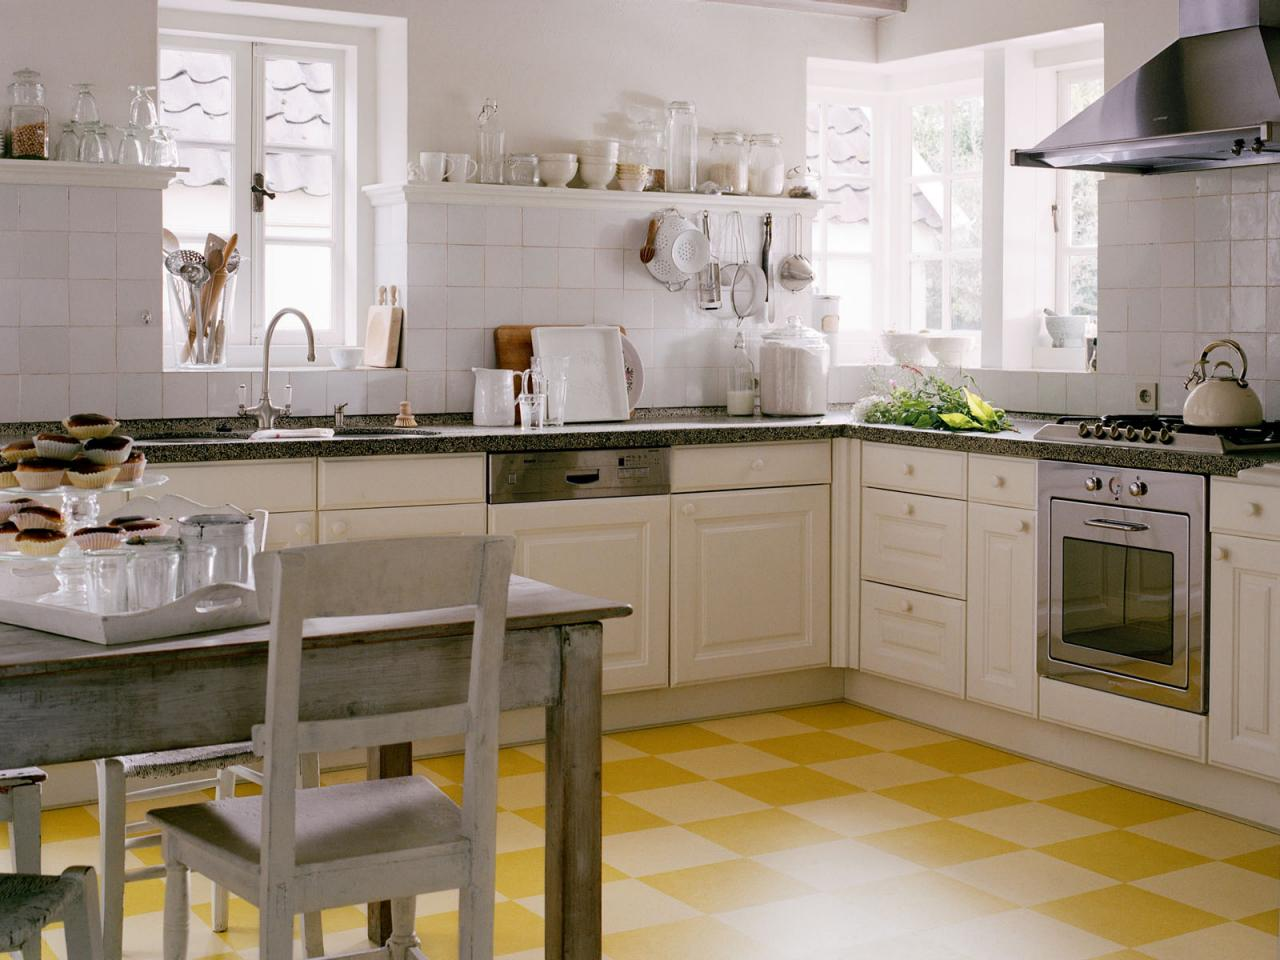 kitchen flooring tiles cheap rooster decor for linoleum in the hgtv